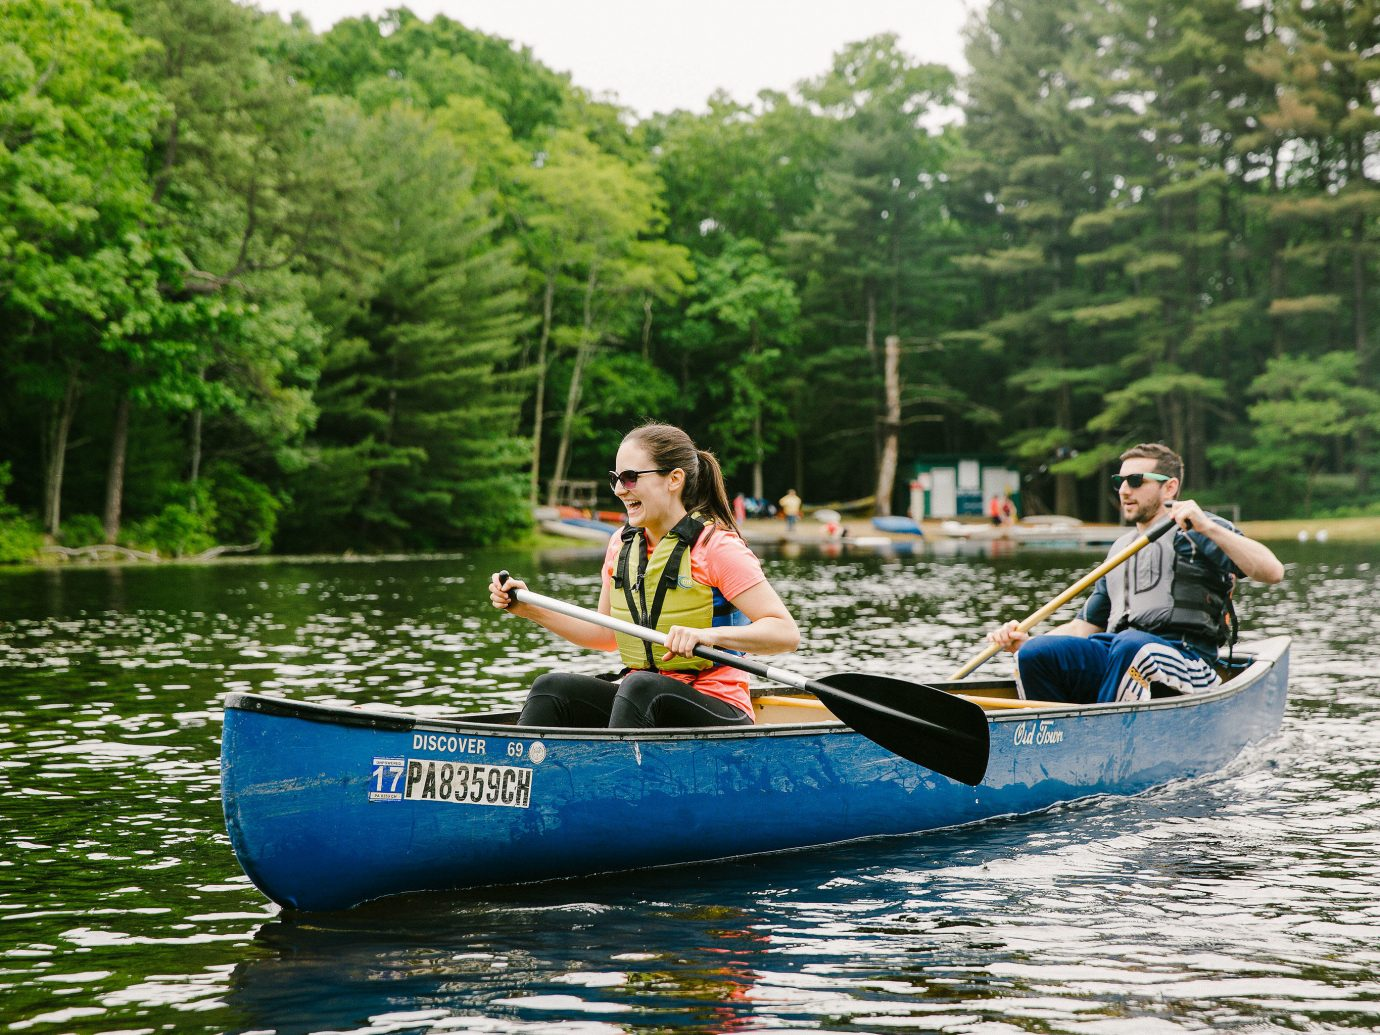 Offbeat tree outdoor water riding canoe waterway Boat water transportation watercraft rowing canoeing boating oar boats and boating equipment and supplies outdoor recreation leisure vehicle watercraft kayak Sport recreation Rowing River Lake paddle vacation tourism fun blue traveling